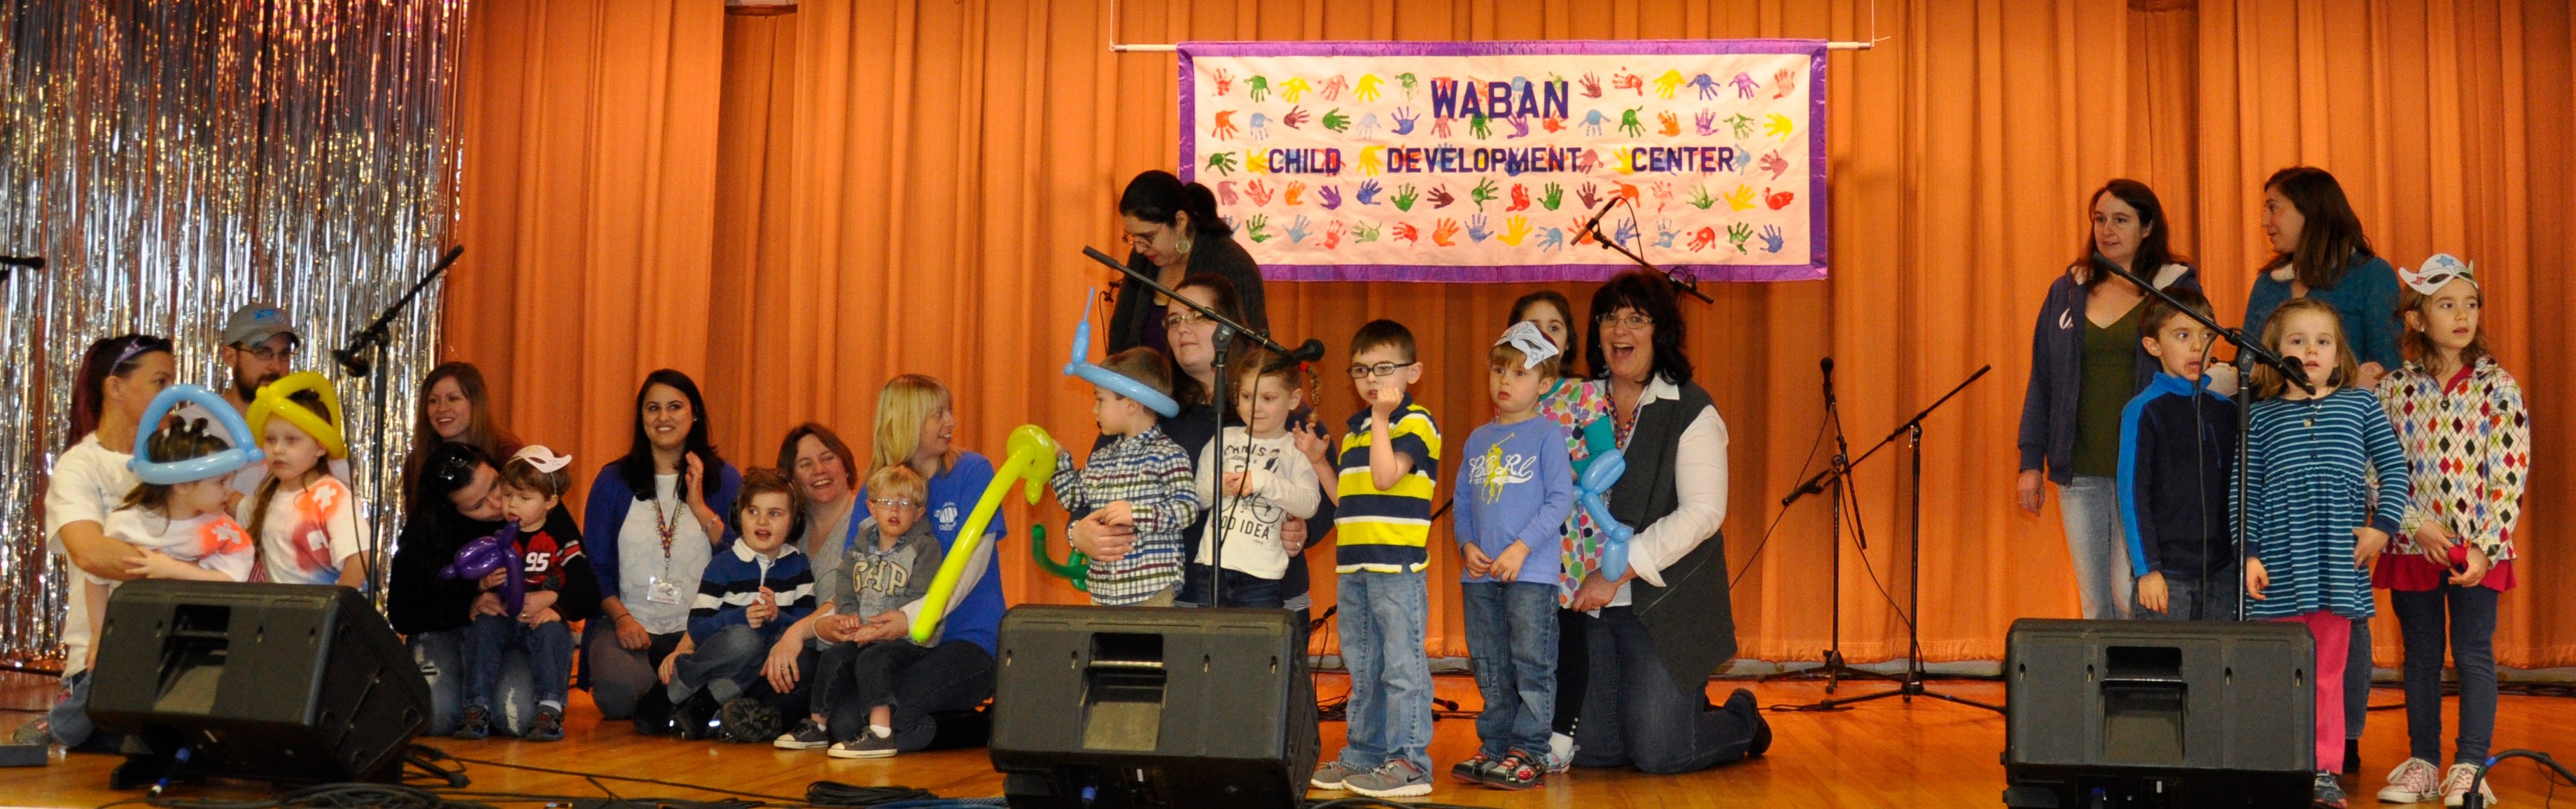 Children from Waban's Fraser-Ford Child Development Center will sing for the audience at the 46th Annual Waban Telethon on Saturday at the St. Ignatius Gym in Sanford. COURTESY PHOTO